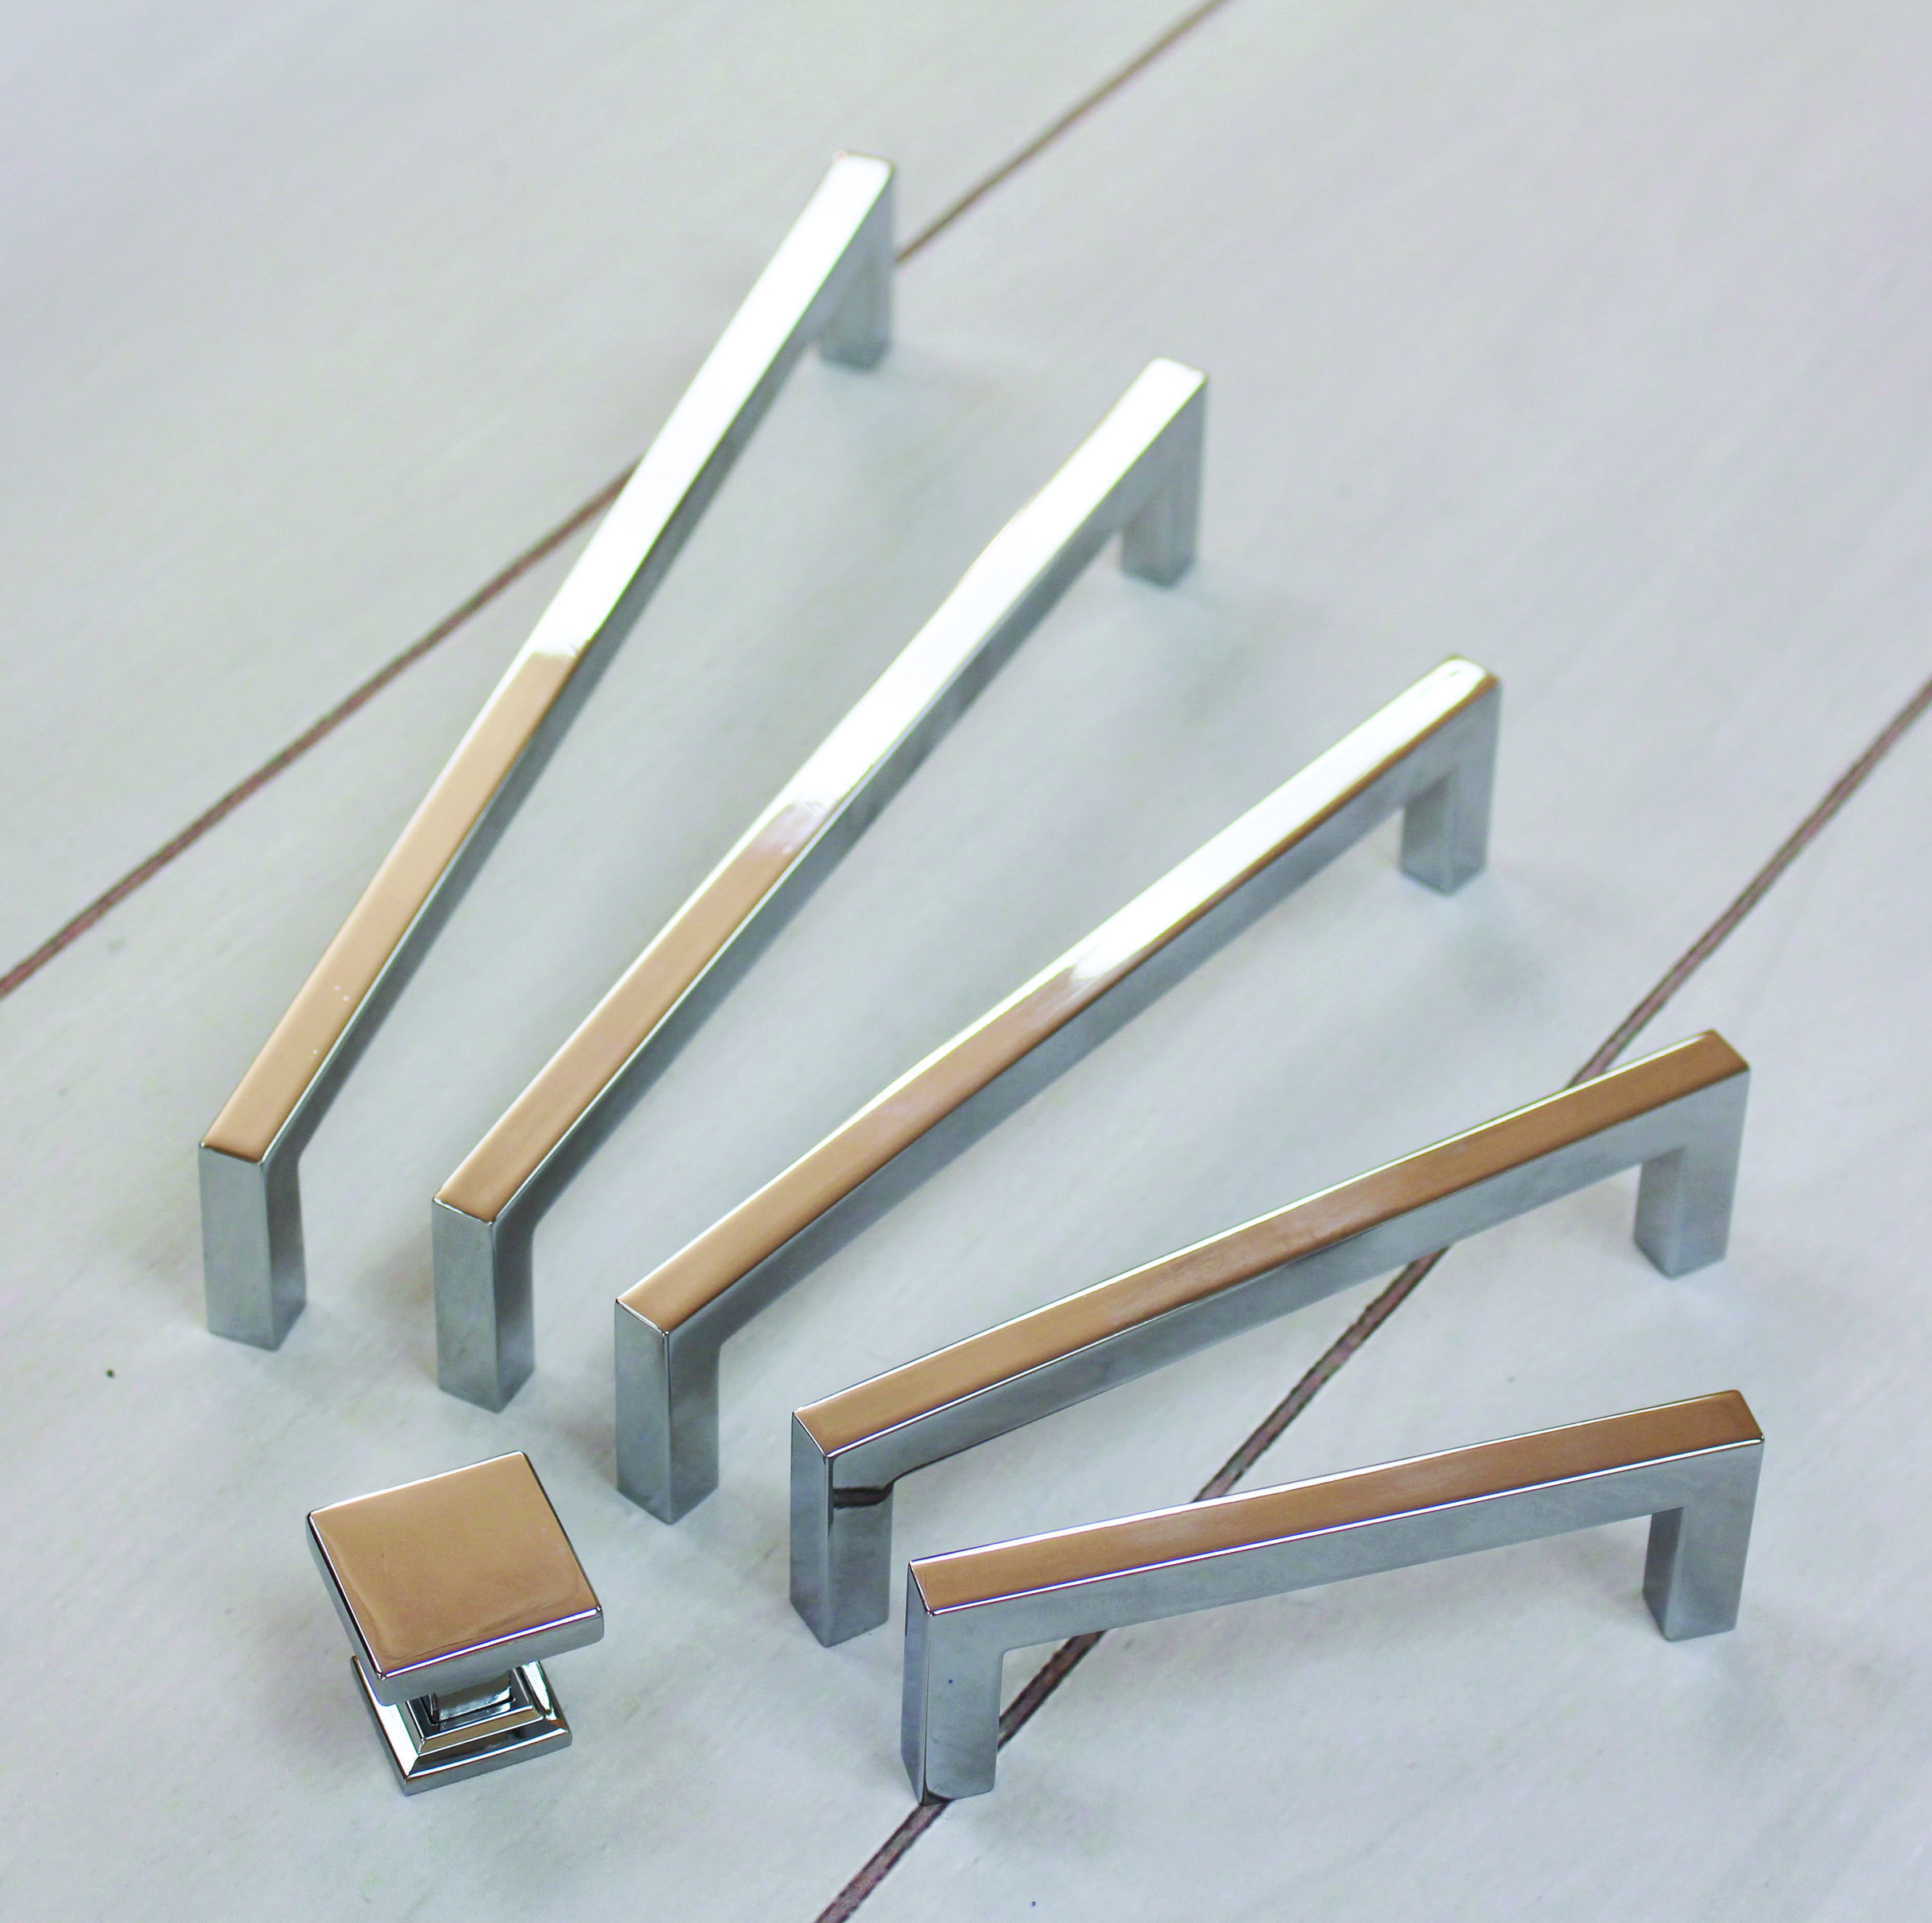 It Coordinates With The Rest Of The Stone Harbor Contemporary Square Cabinet  Hardware Collection.